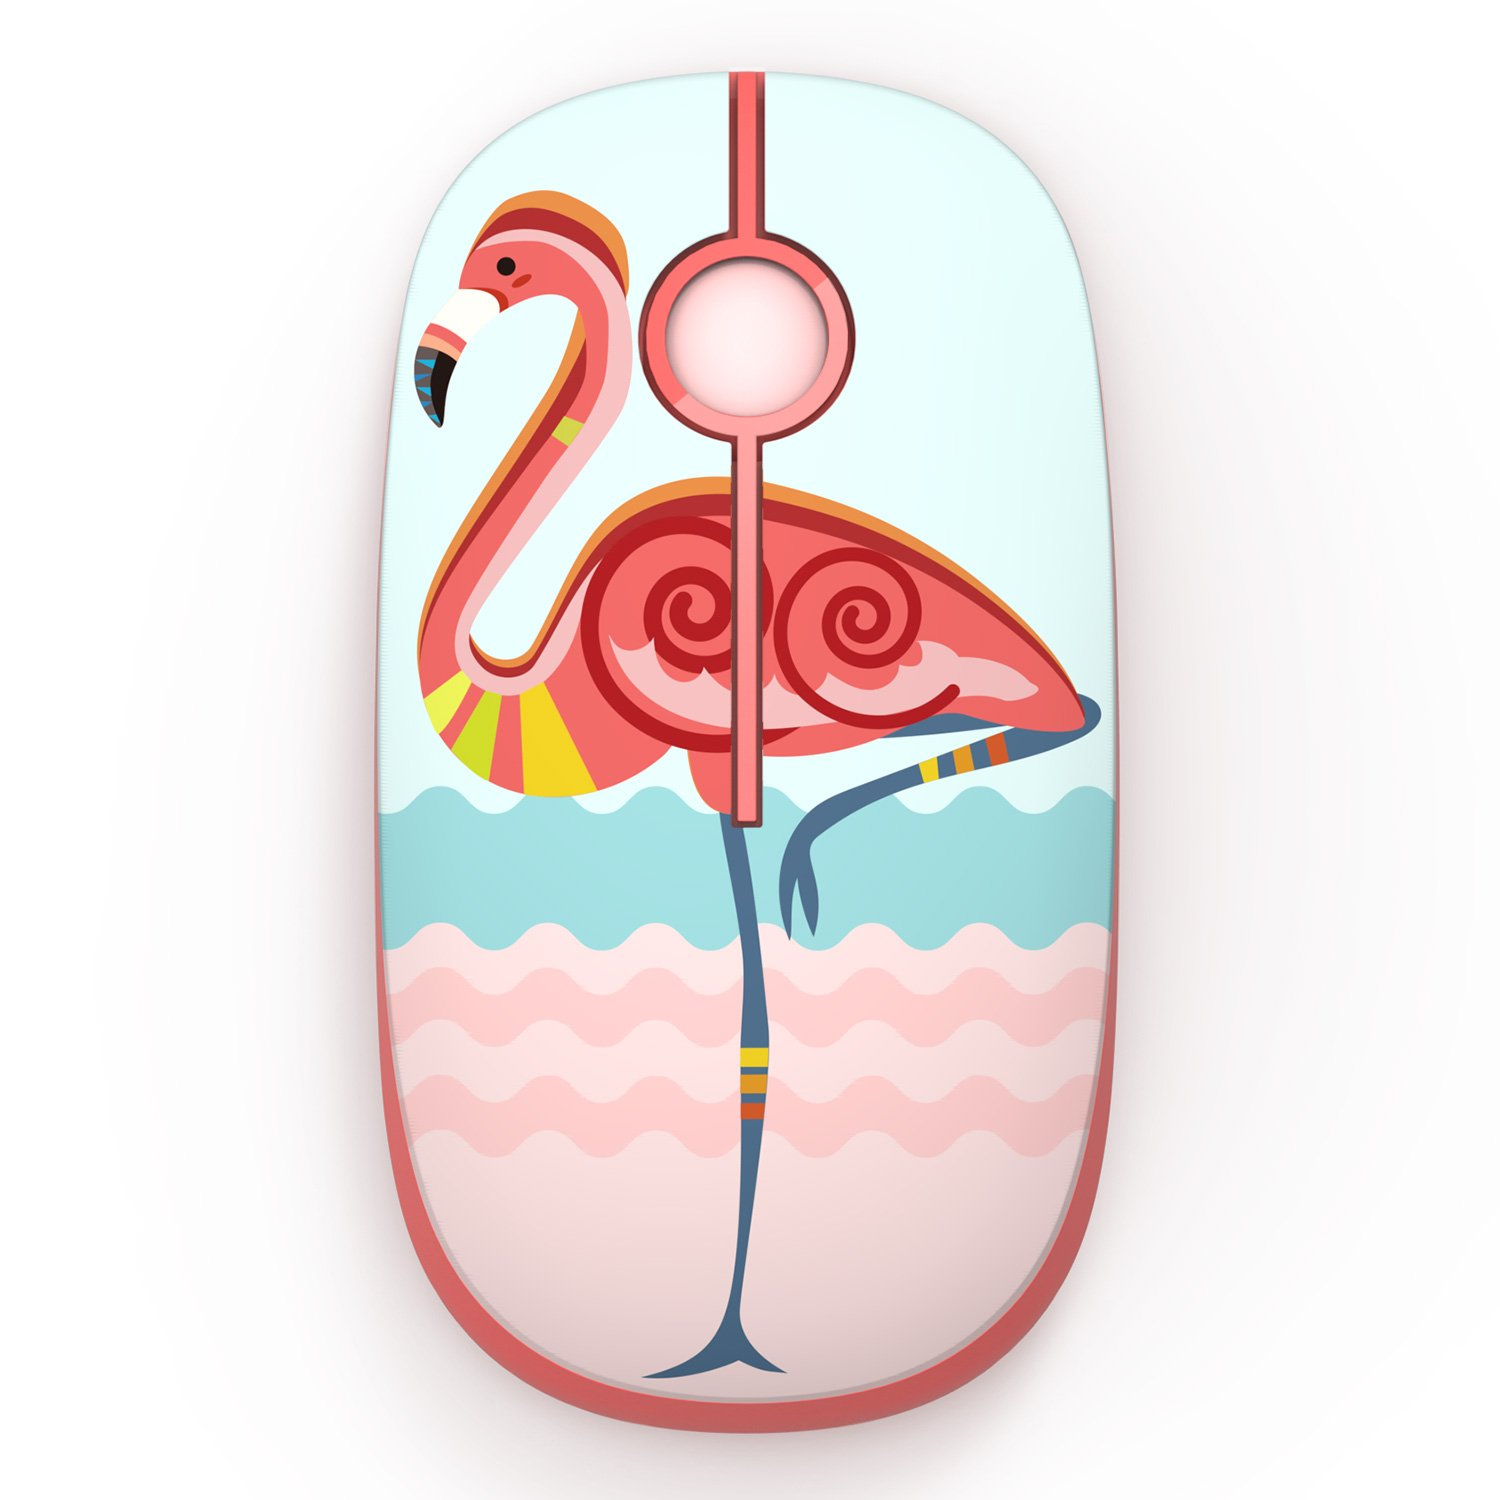 2.4G Slim Wireless Mouse with Nano Receiver,Less Noise,Jelly Comb Portable Mobile Optical Mice for Notebook, PC, Laptop, Computer, MS001 (Flamingo)